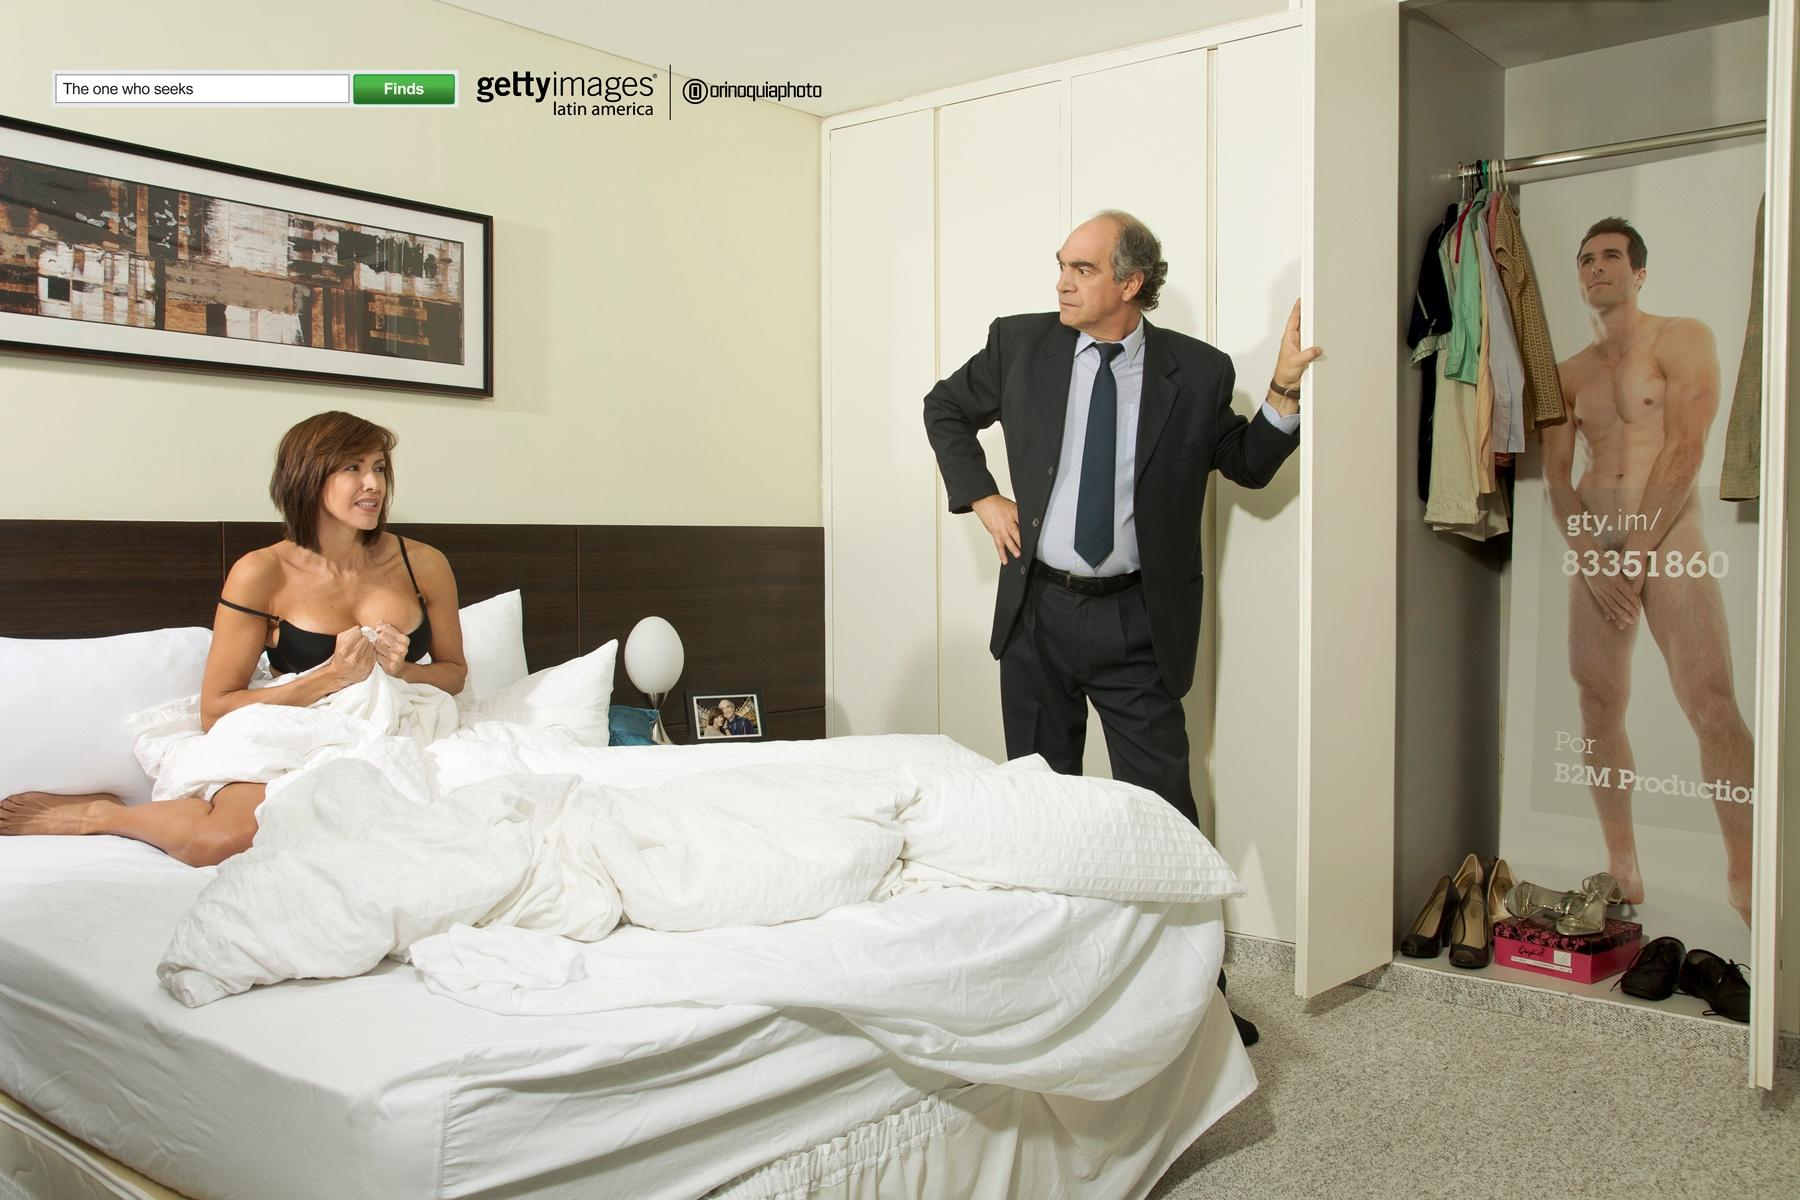 Getty Images Print Ad -  Finders, Lovers